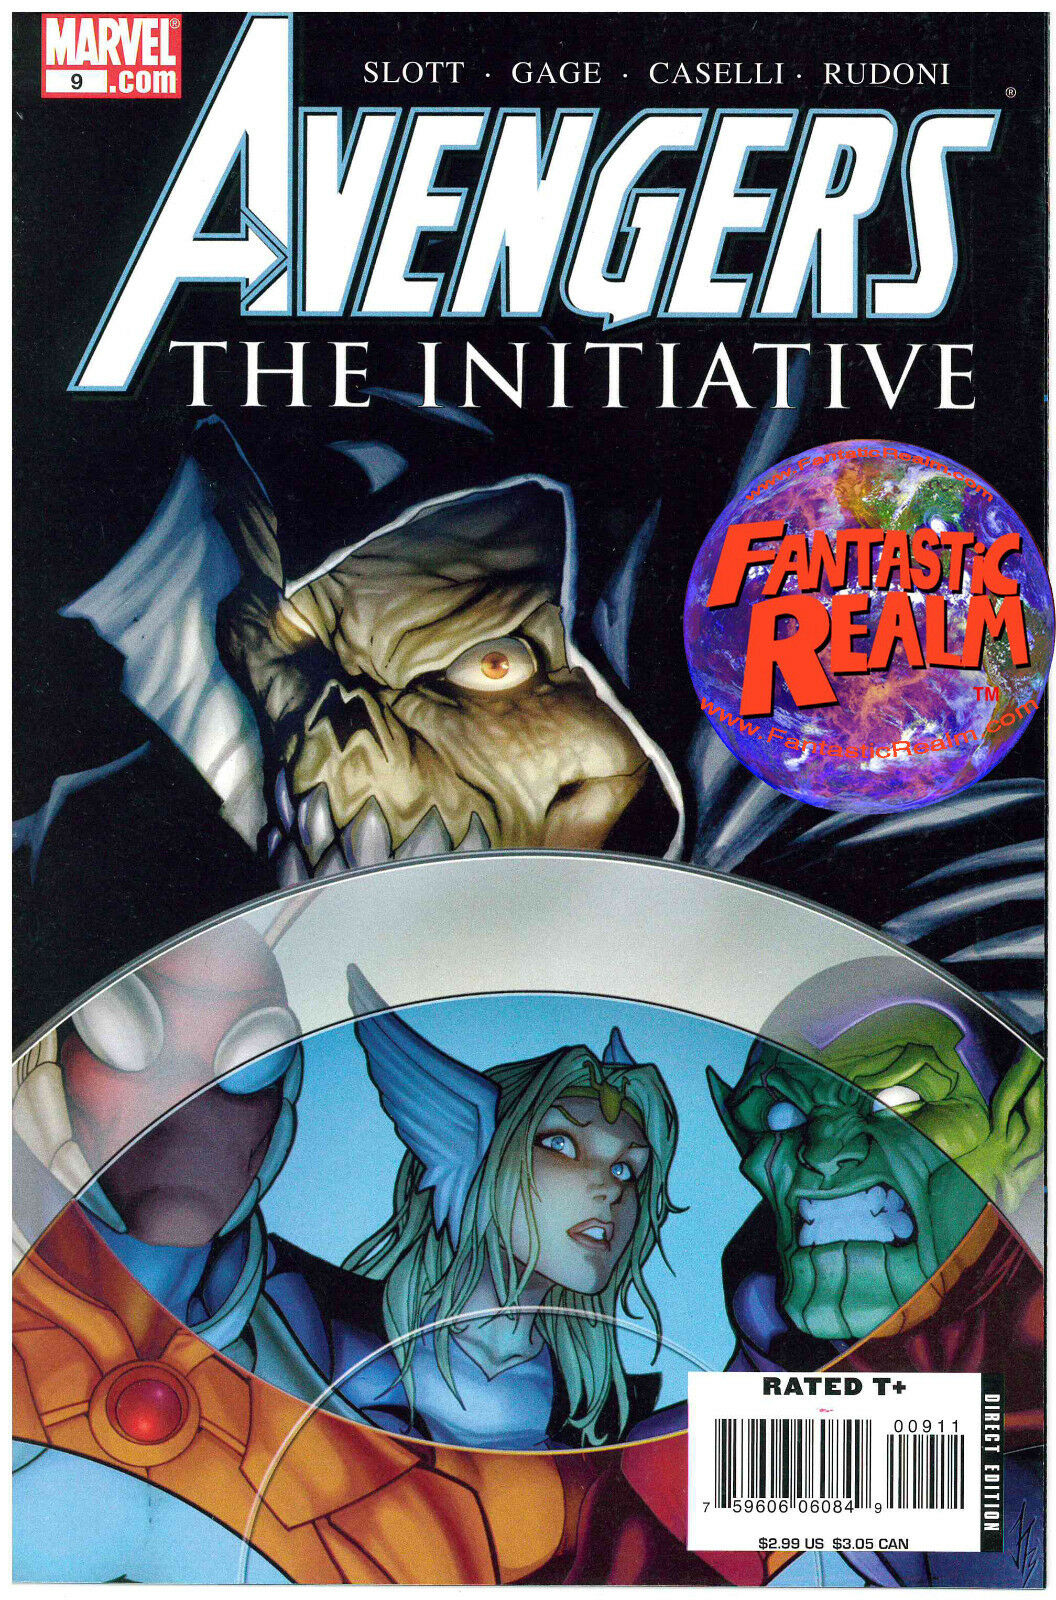 AVENGERS #9: THE INITIATIVE MARVEL COMICS